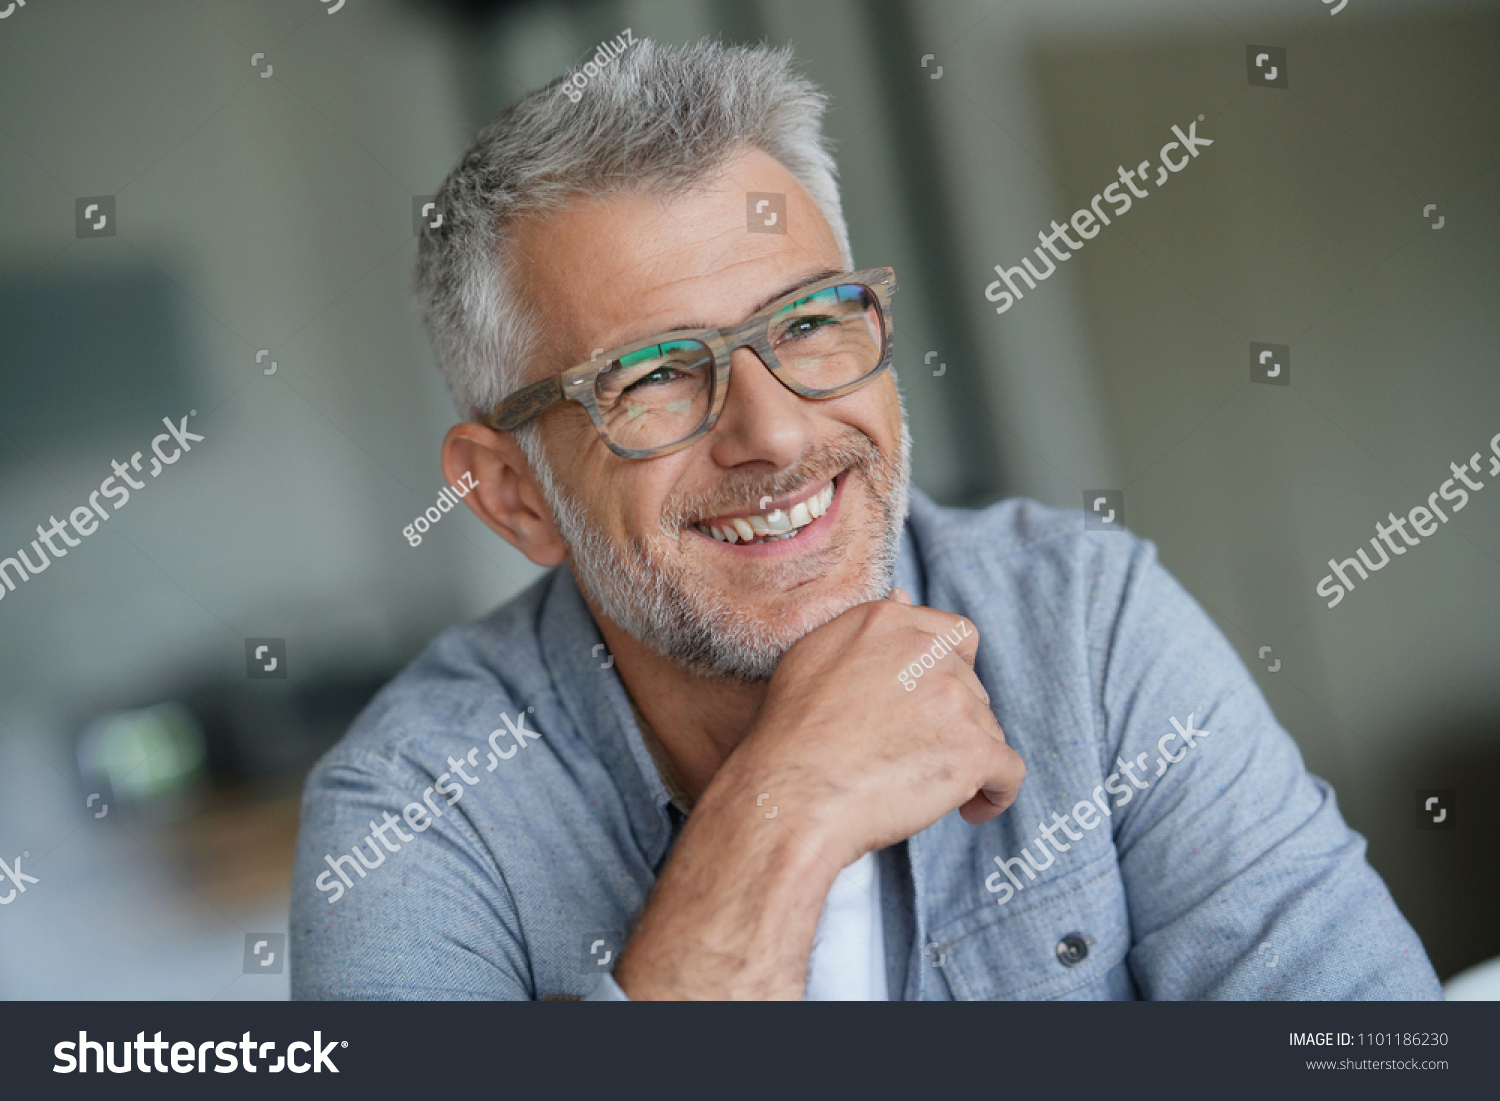 Middle-aged guy with trendy eyeglasses #1101186230